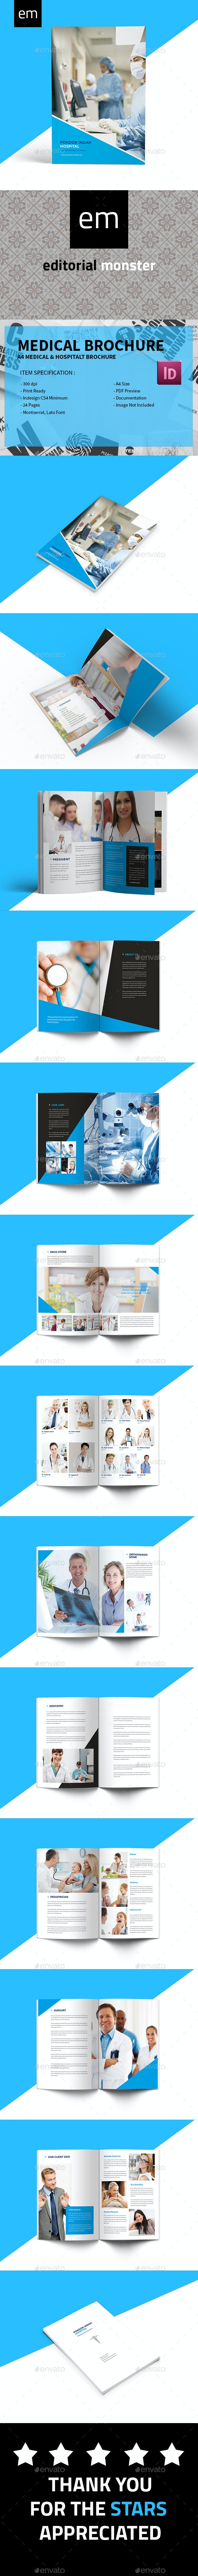 Medical Care and Hospital Brochure - Corporate Brochures